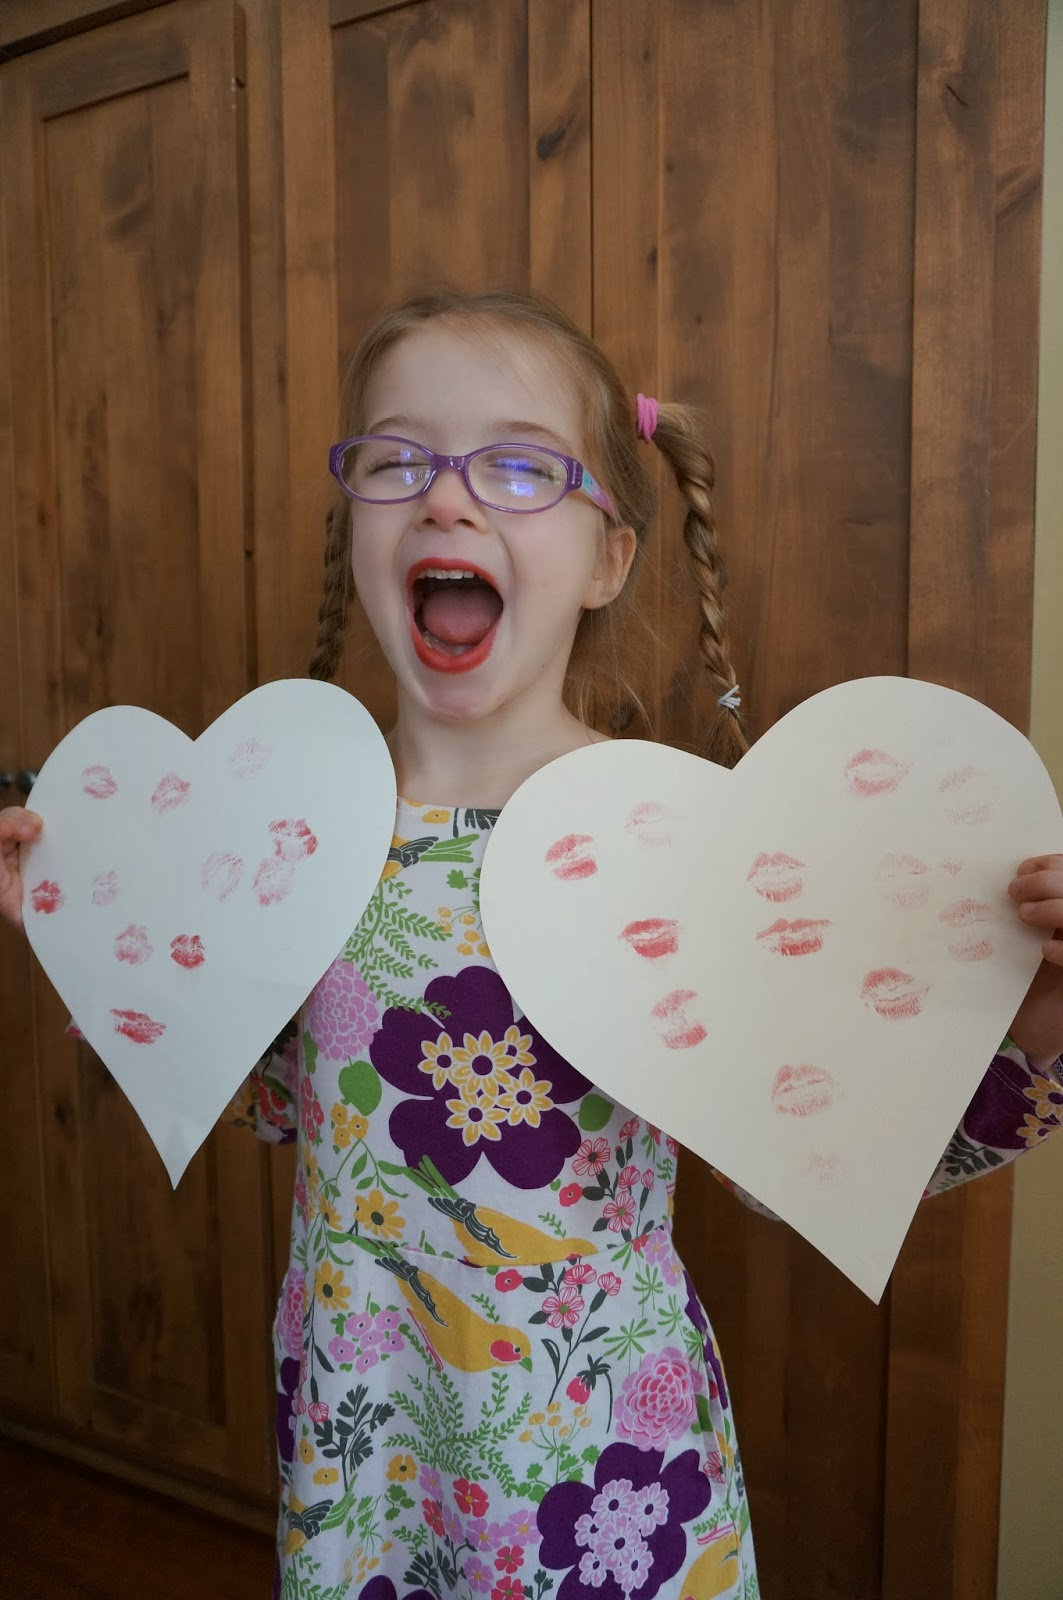 Kiss those hearts!